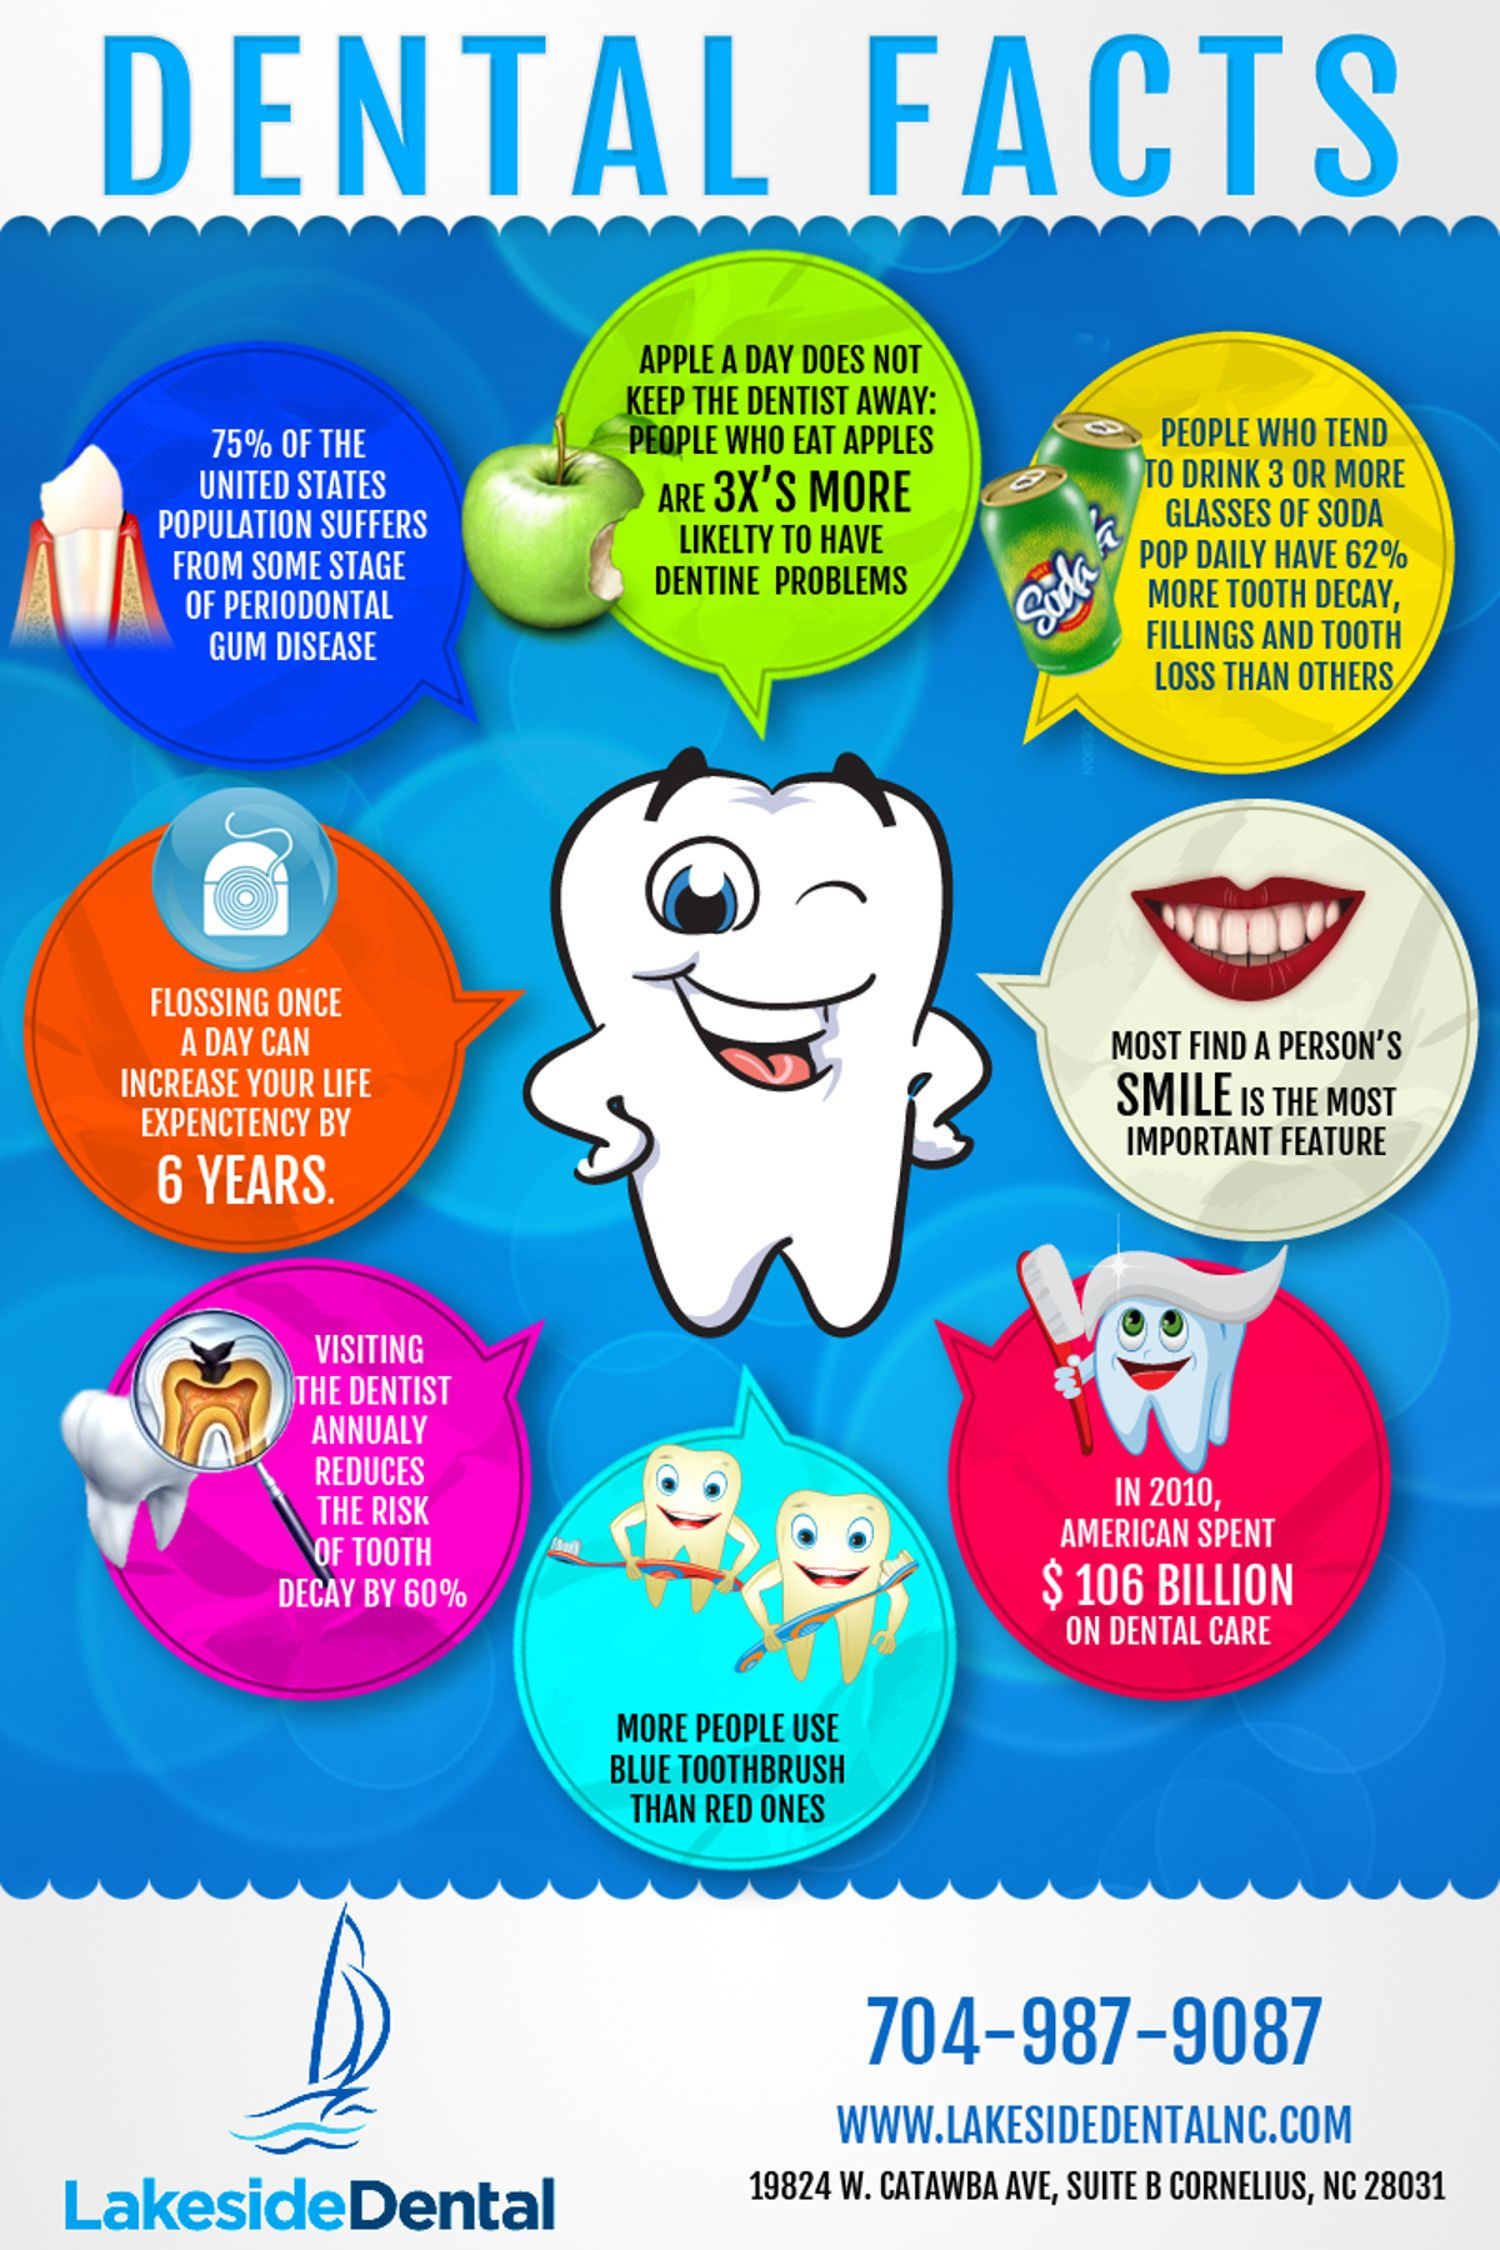 Dental Facts! Emergency dentist, Dental, Dentist